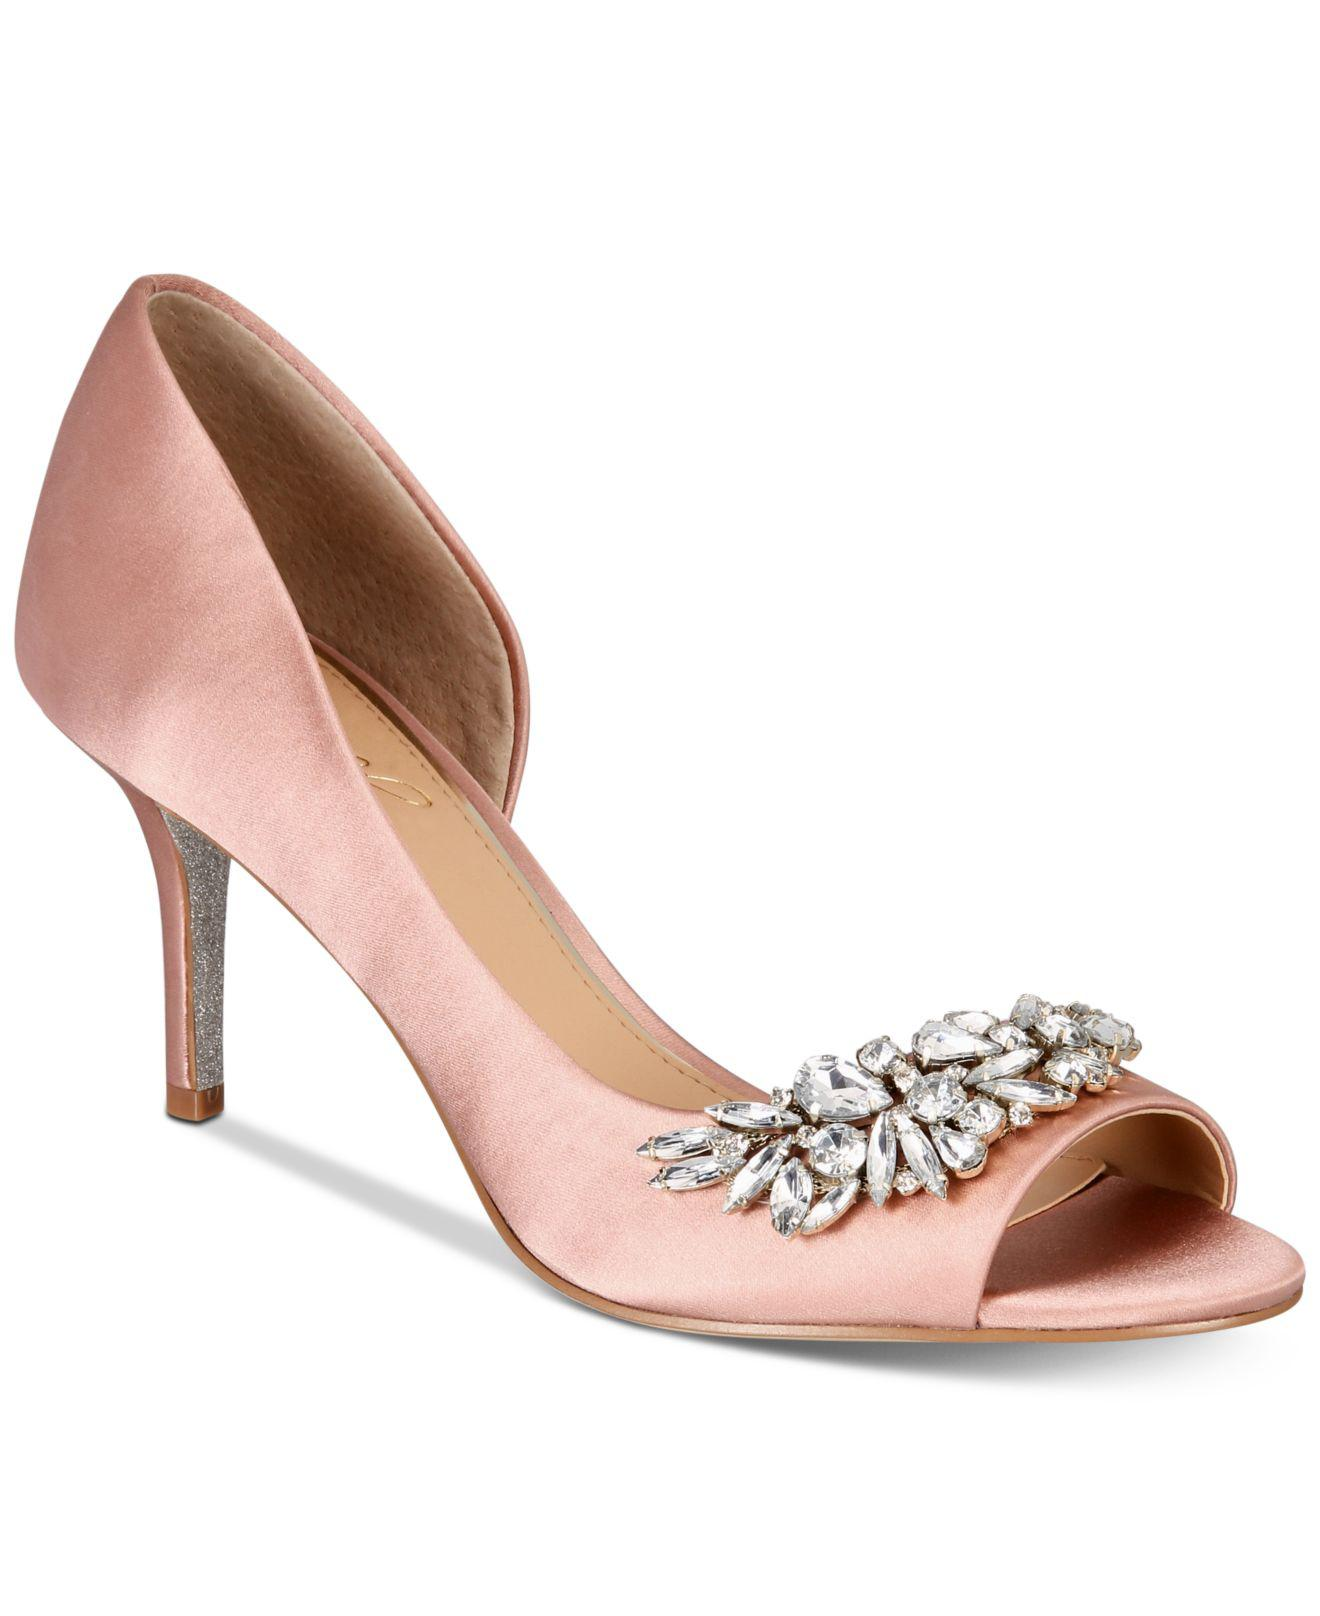 824499e40d09 Lyst - Badgley Mischka Melvina Evening Sandals in Pink